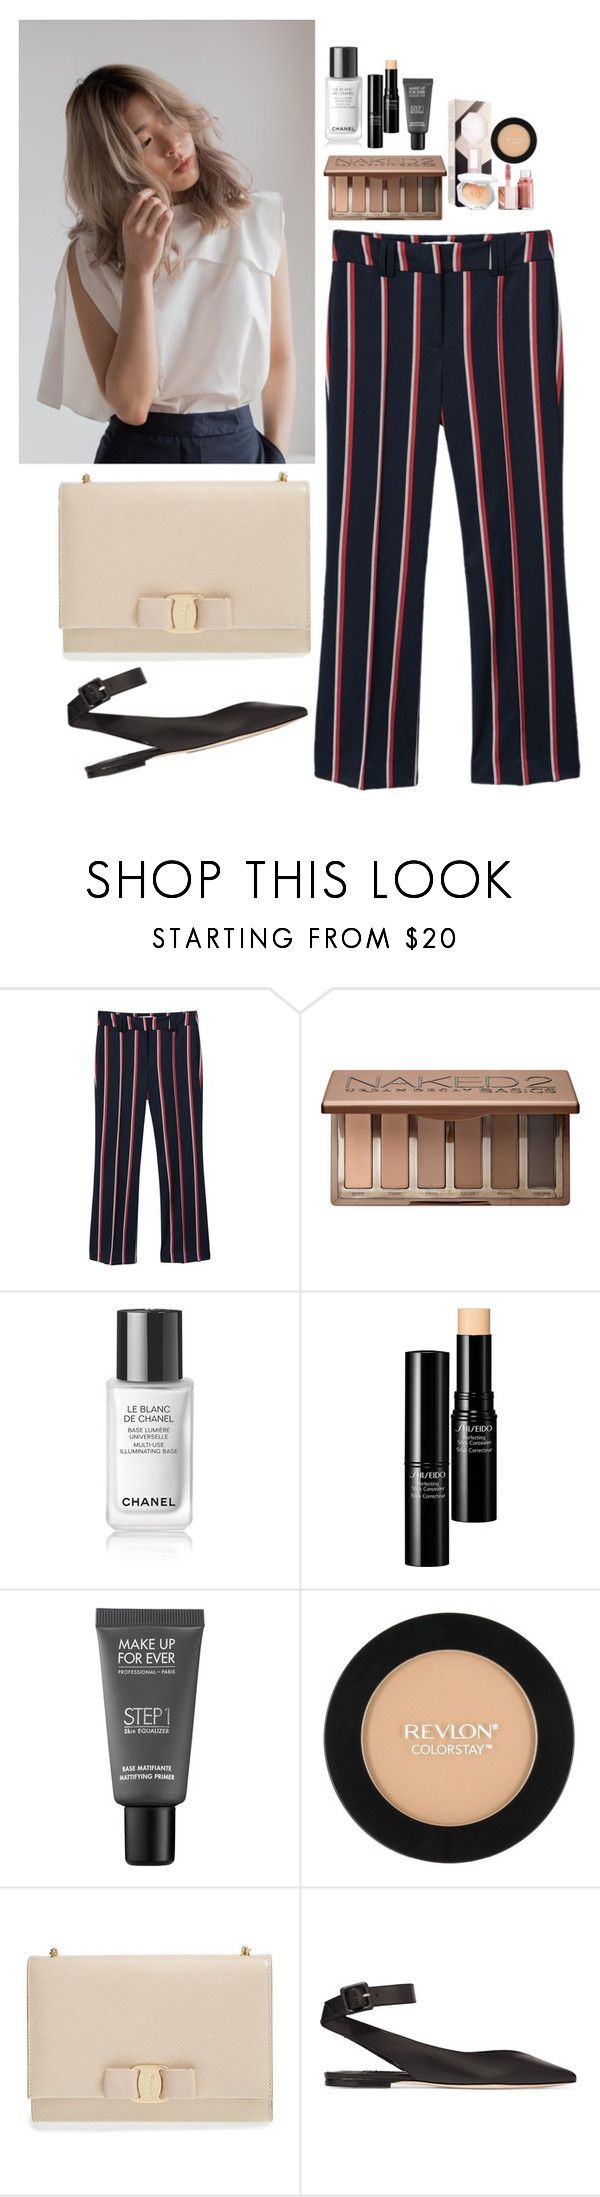 """""""Untitled #5189"""" by veronicaptr ❤ liked on Polyvore featuring MANGO, Urban Decay, Chanel, Shiseido, MAKE UP FOR EVER, Revlon, Salvatore Ferragamo and Jimmy Choo"""